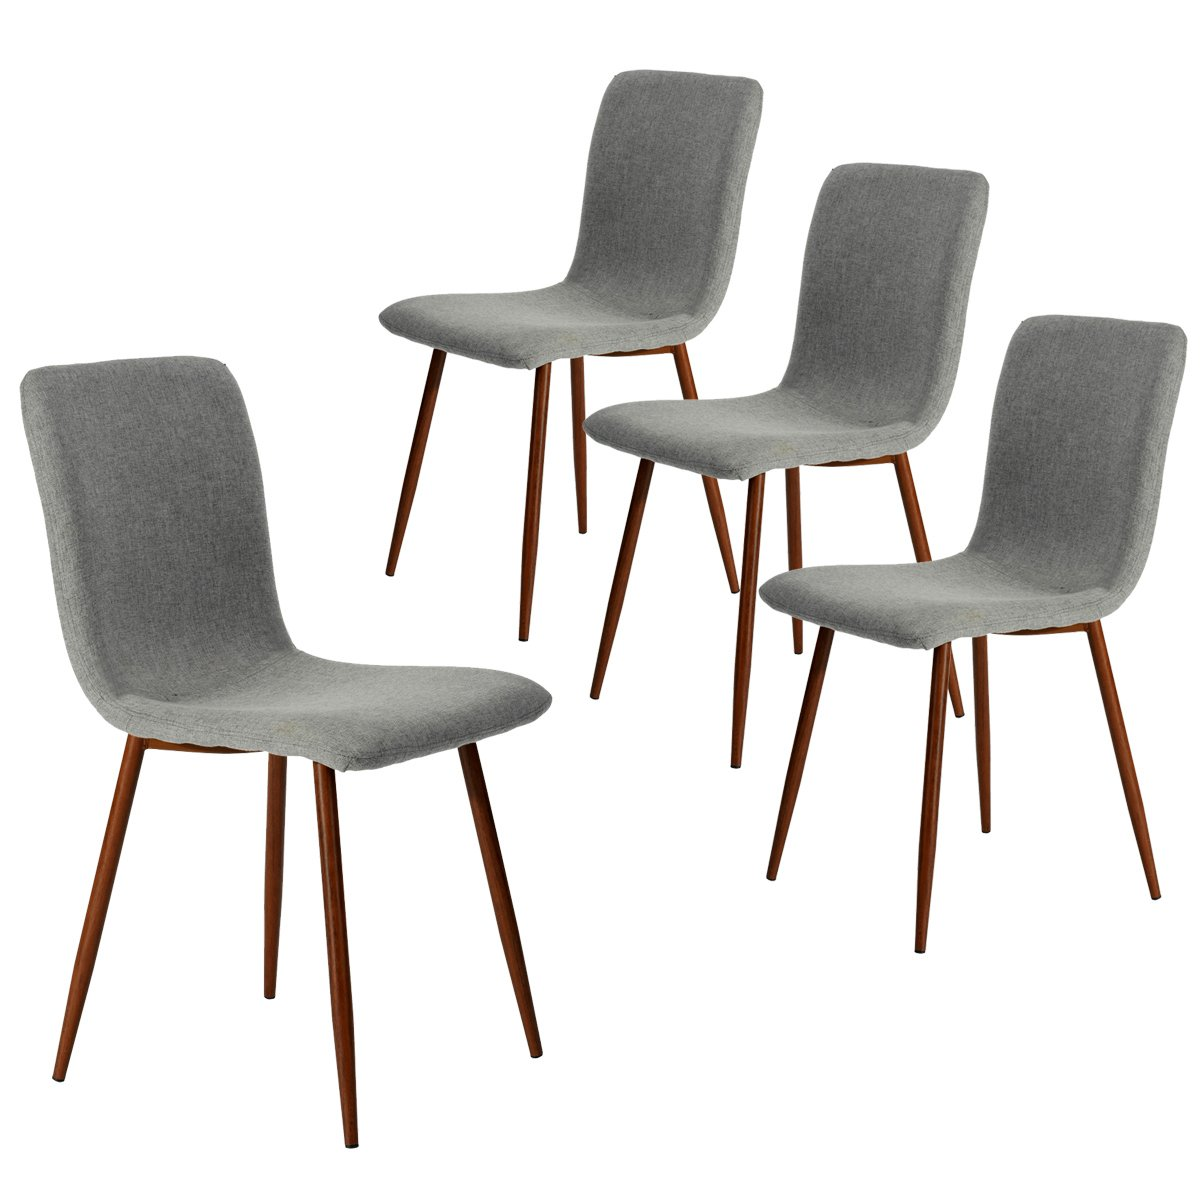 Coavas Set Of 4 Kitchen Dining Chairs Fabric Cushion Side Chairs With  Sturdy Metal Legs For Home Kitchen Living Room, Grey U2026